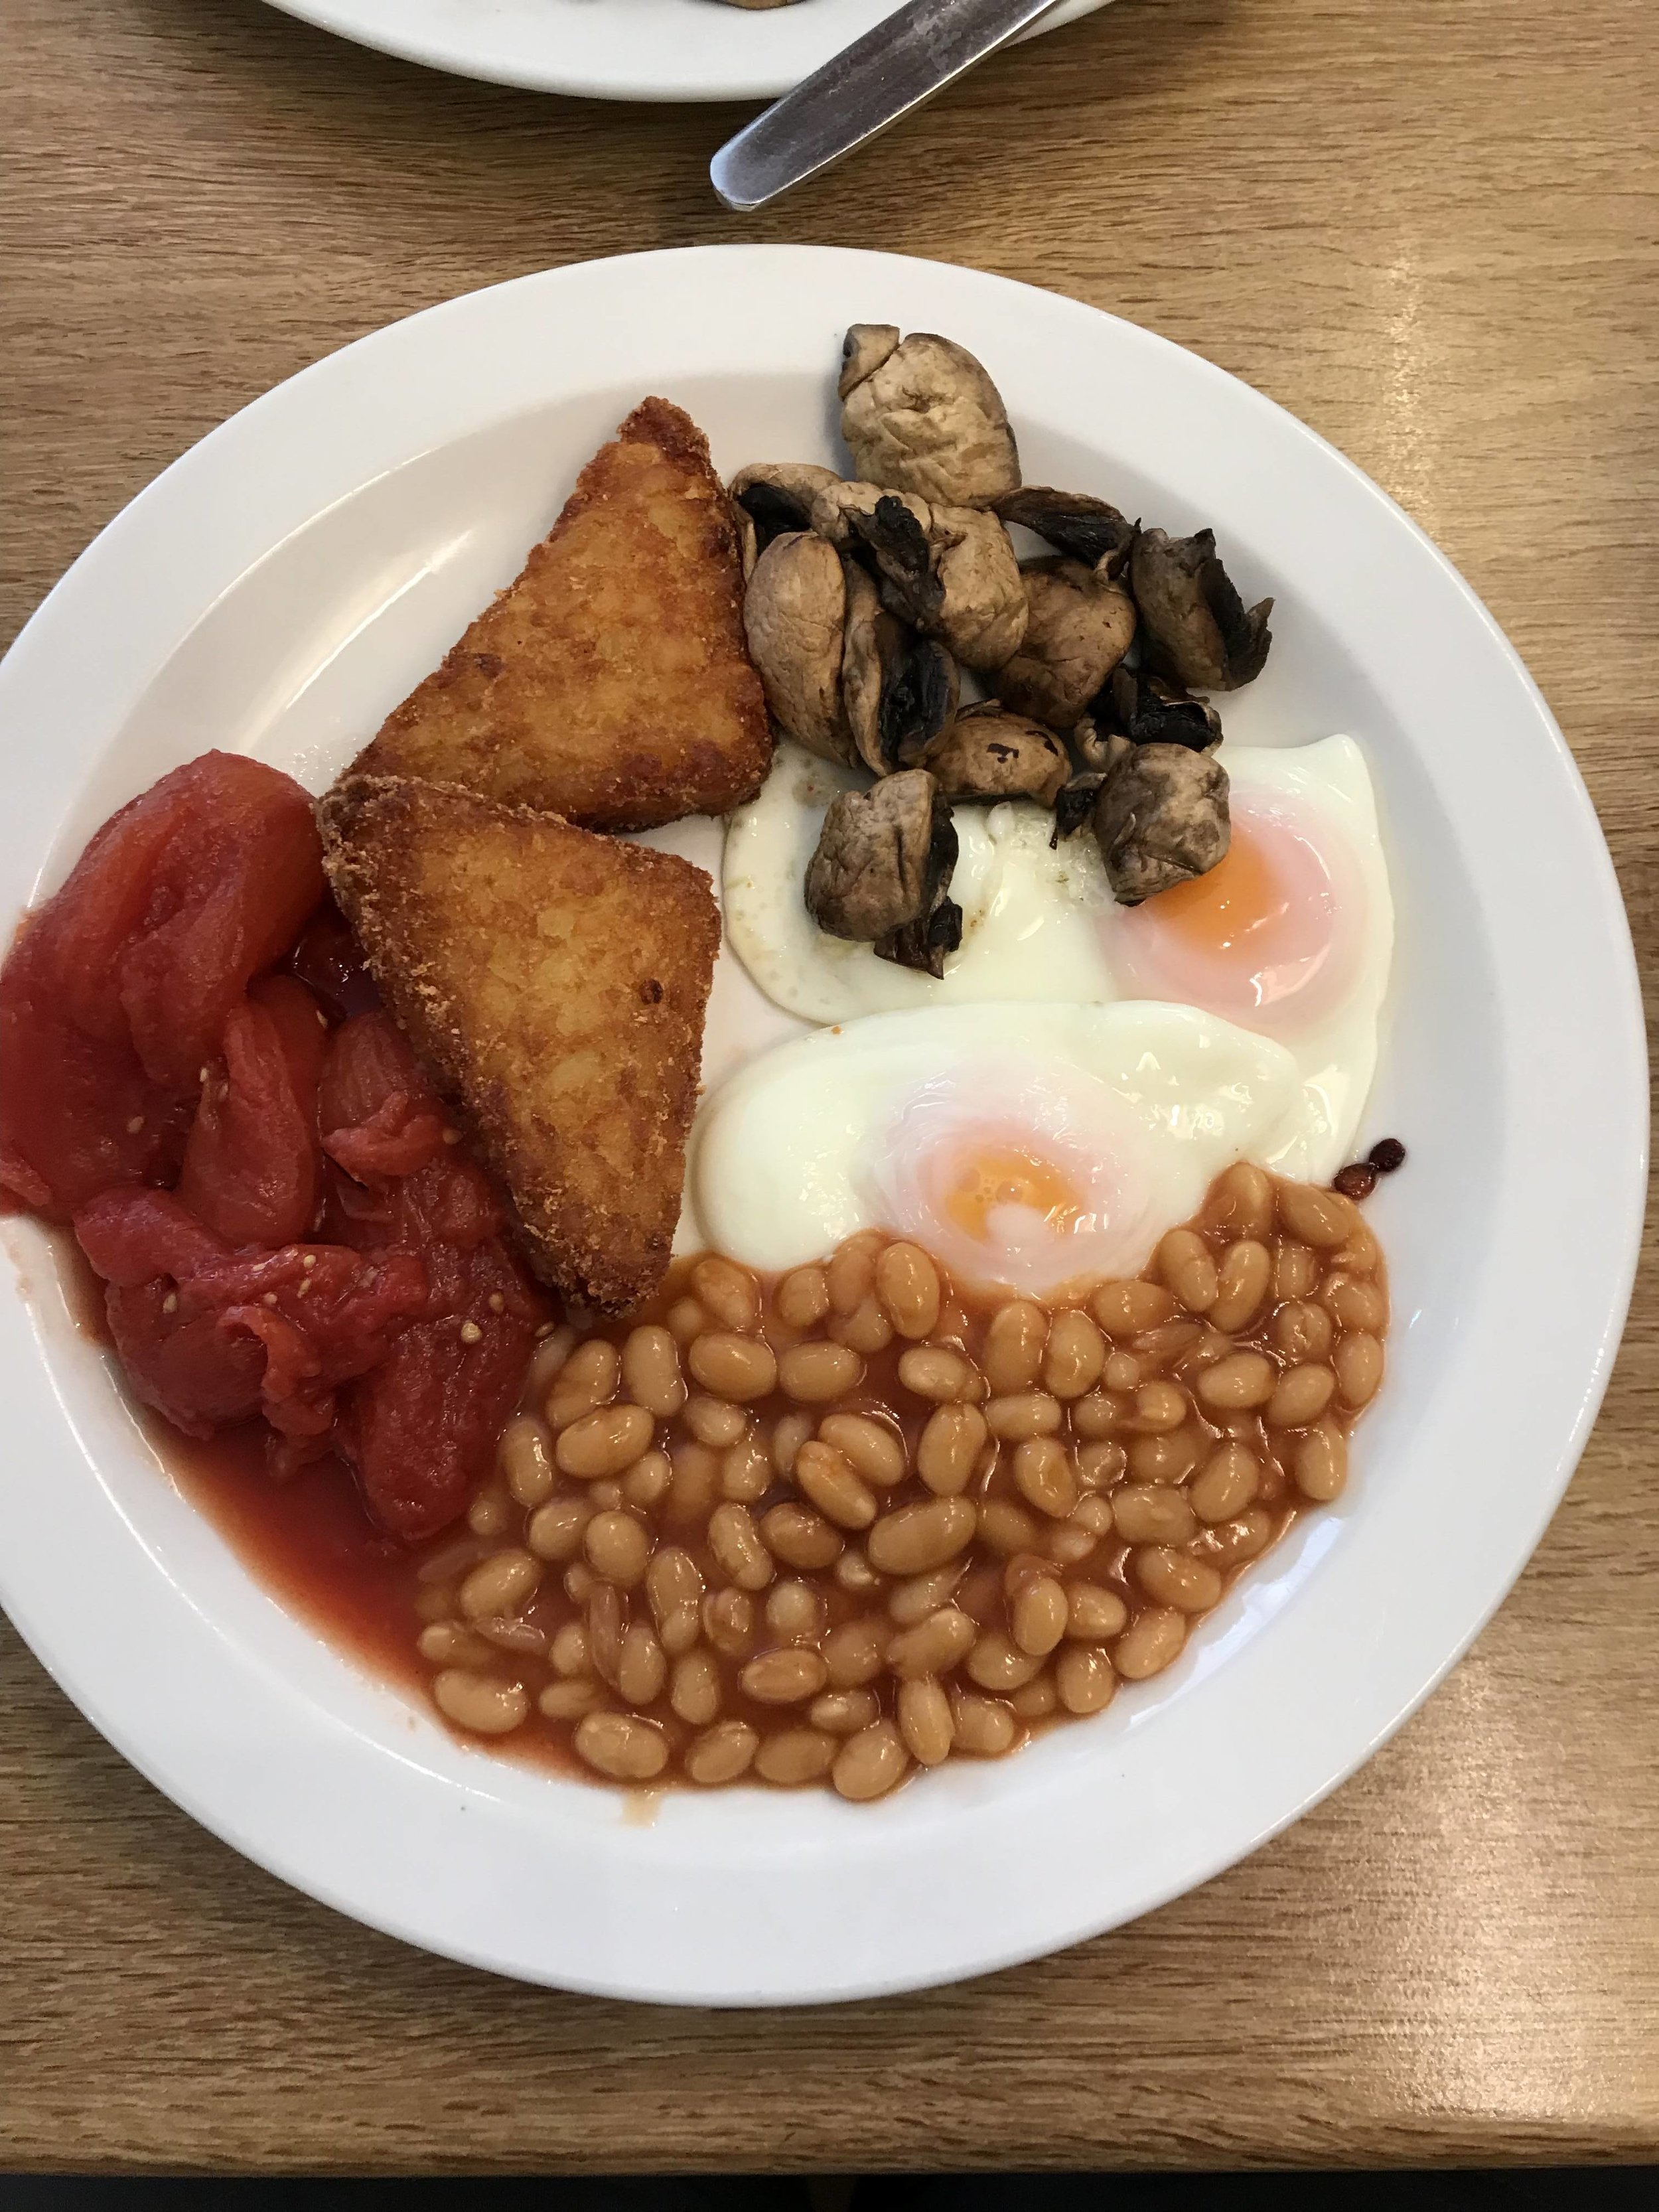 another version of a traditional English breakfast